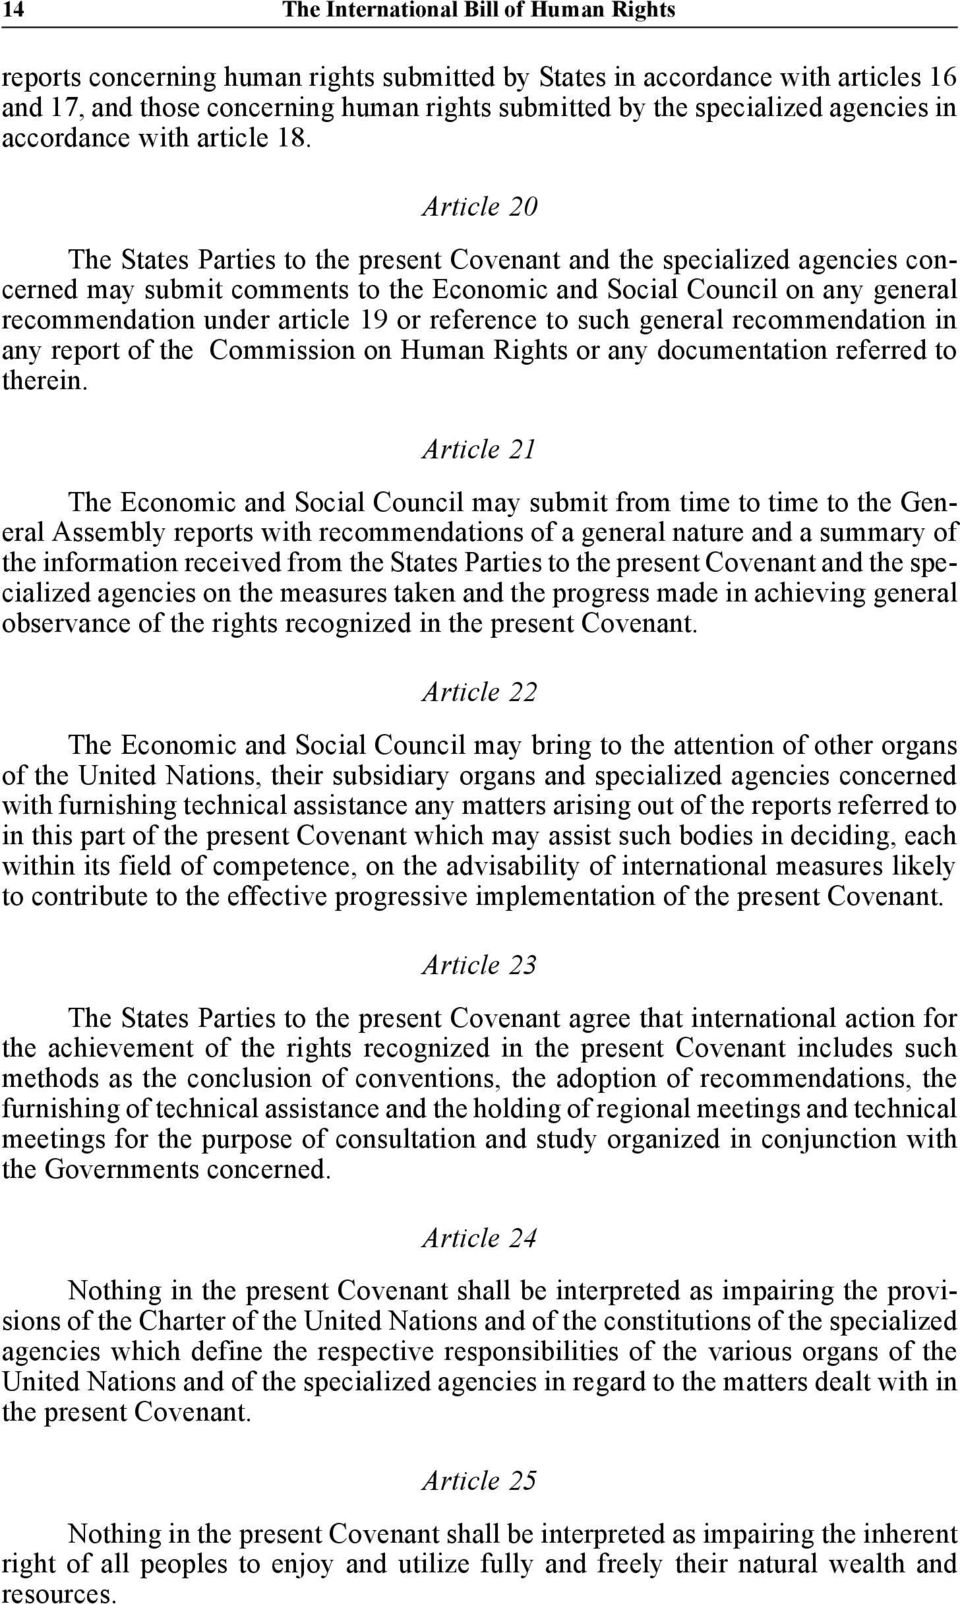 Article 20 The States Parties to the present Covenant and the specialized agencies concerned may submit comments to the Economic and Social Council on any general recommendation under article 19 or